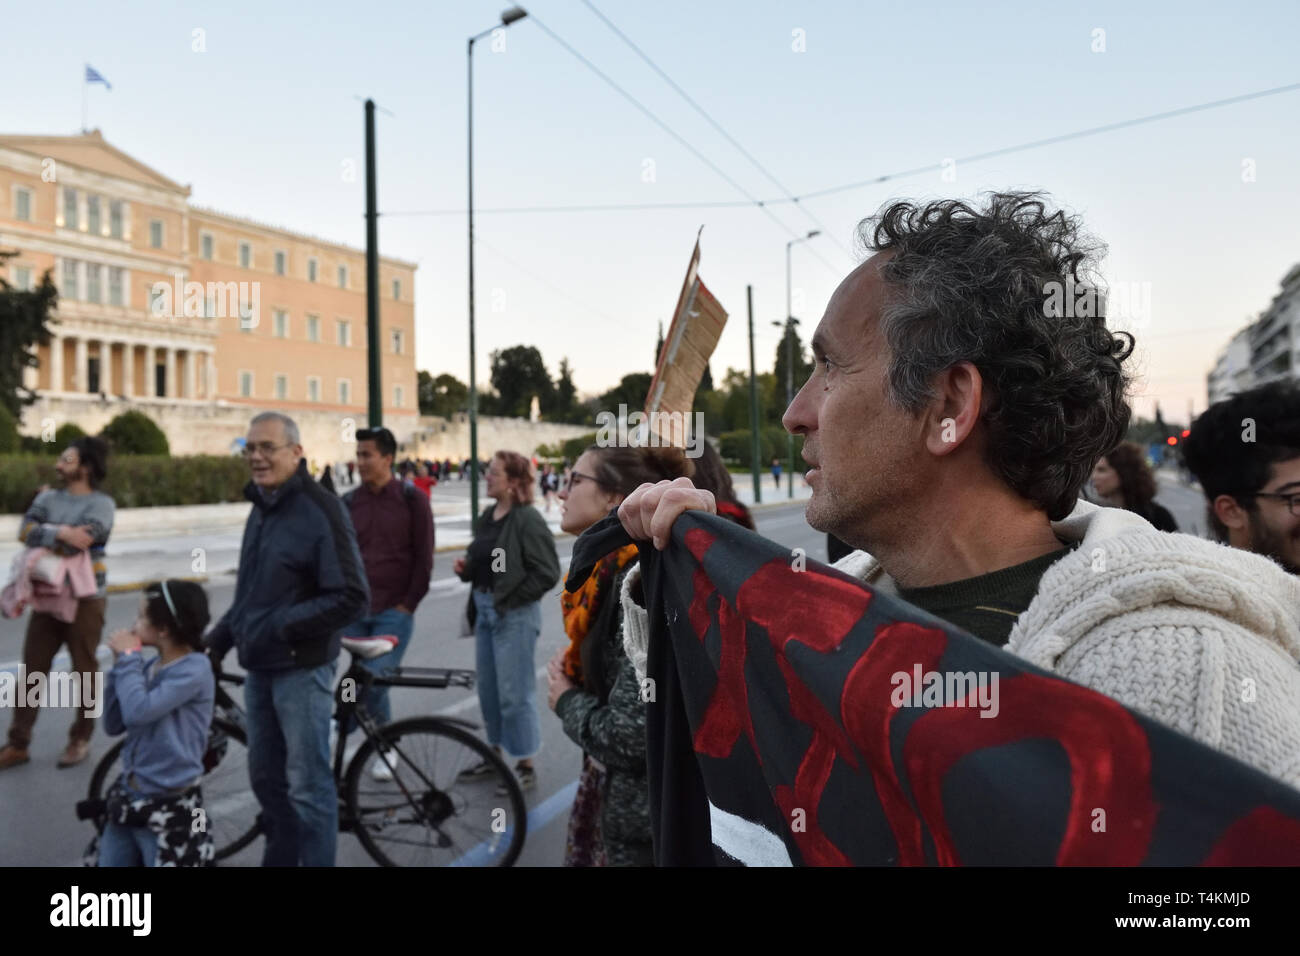 Athens, Greece. 16th Apr 2019. Refugees fearing evictions march with supporters towards the EU offices calling for funding for the EU ESTIA program which provides rental housing and cash assistance in Athens, Greece. Credit: Nicolas Koutsokostas/Alamy Stock Photo. Stock Photo